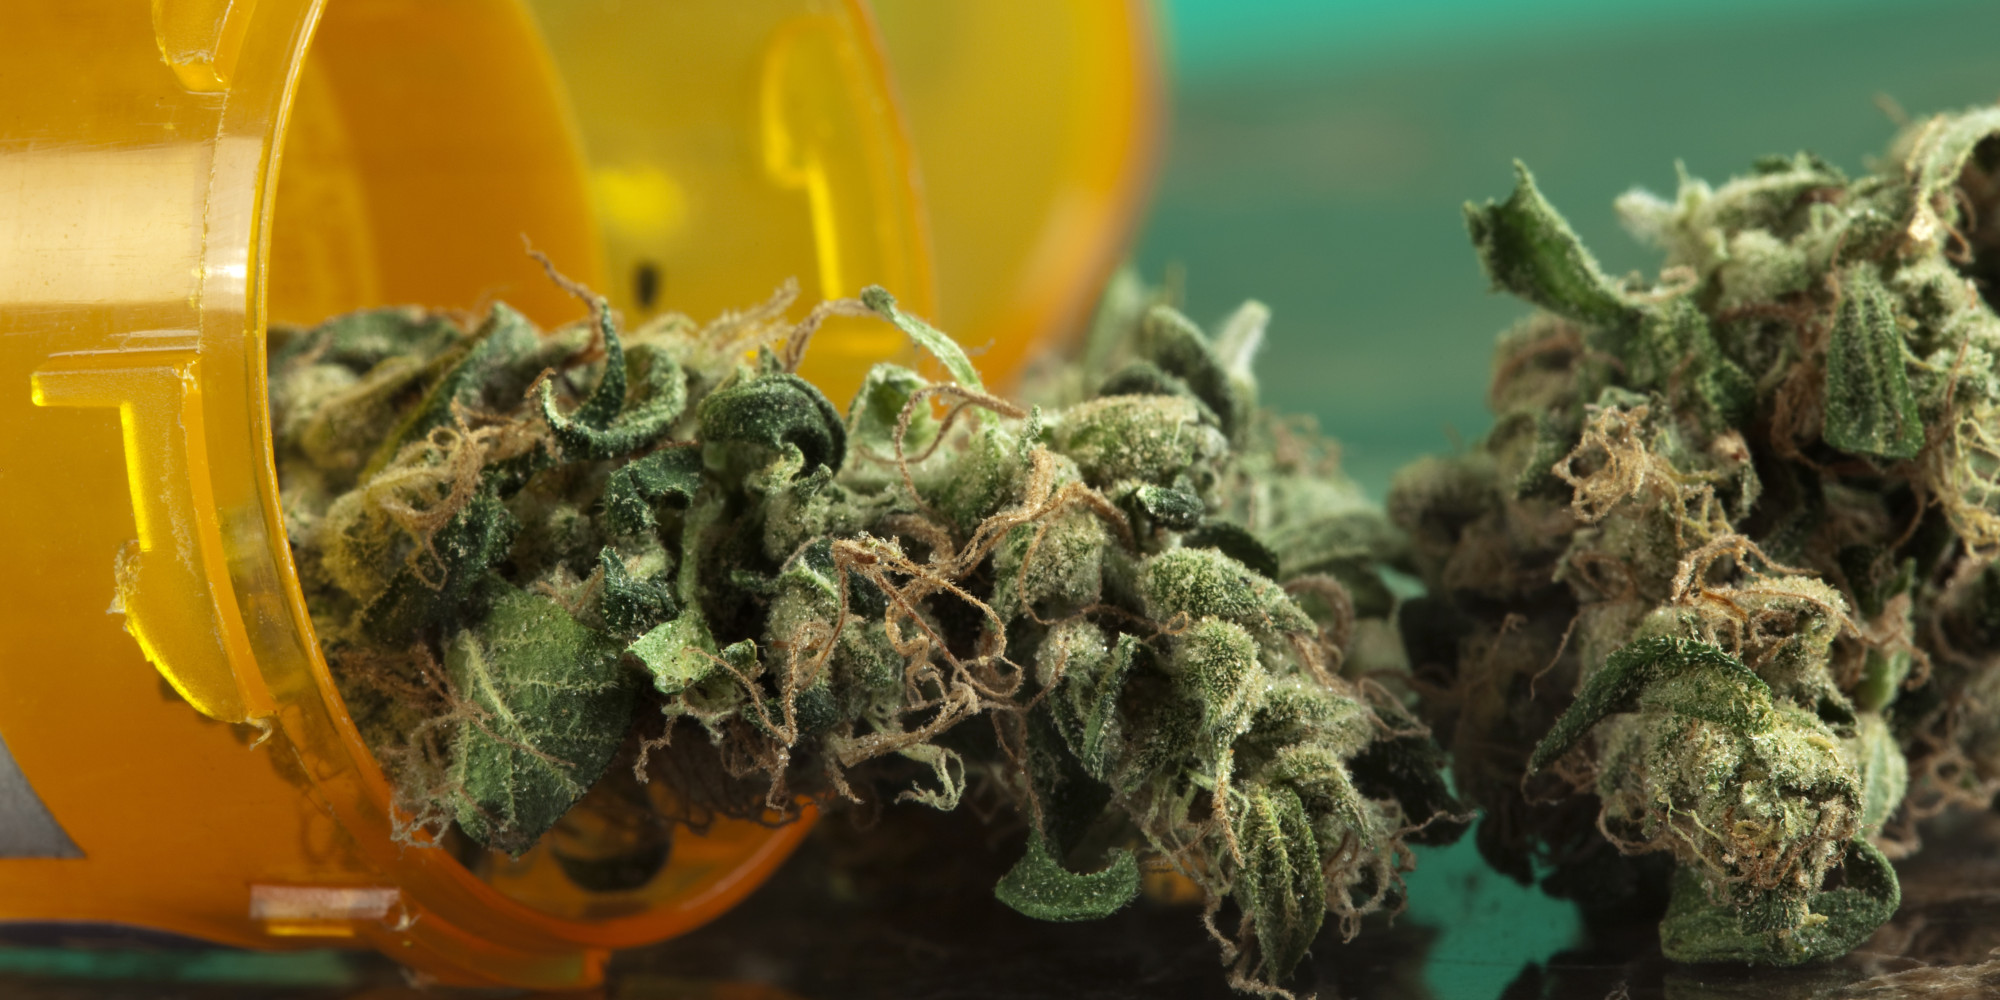 the many medicinal purposes of marijuana Because it's a fast-growing plant that's easy to cultivate and has many uses,  became the first state to legalize marijuana for medicinal use by people with severe or chronic illnesses.